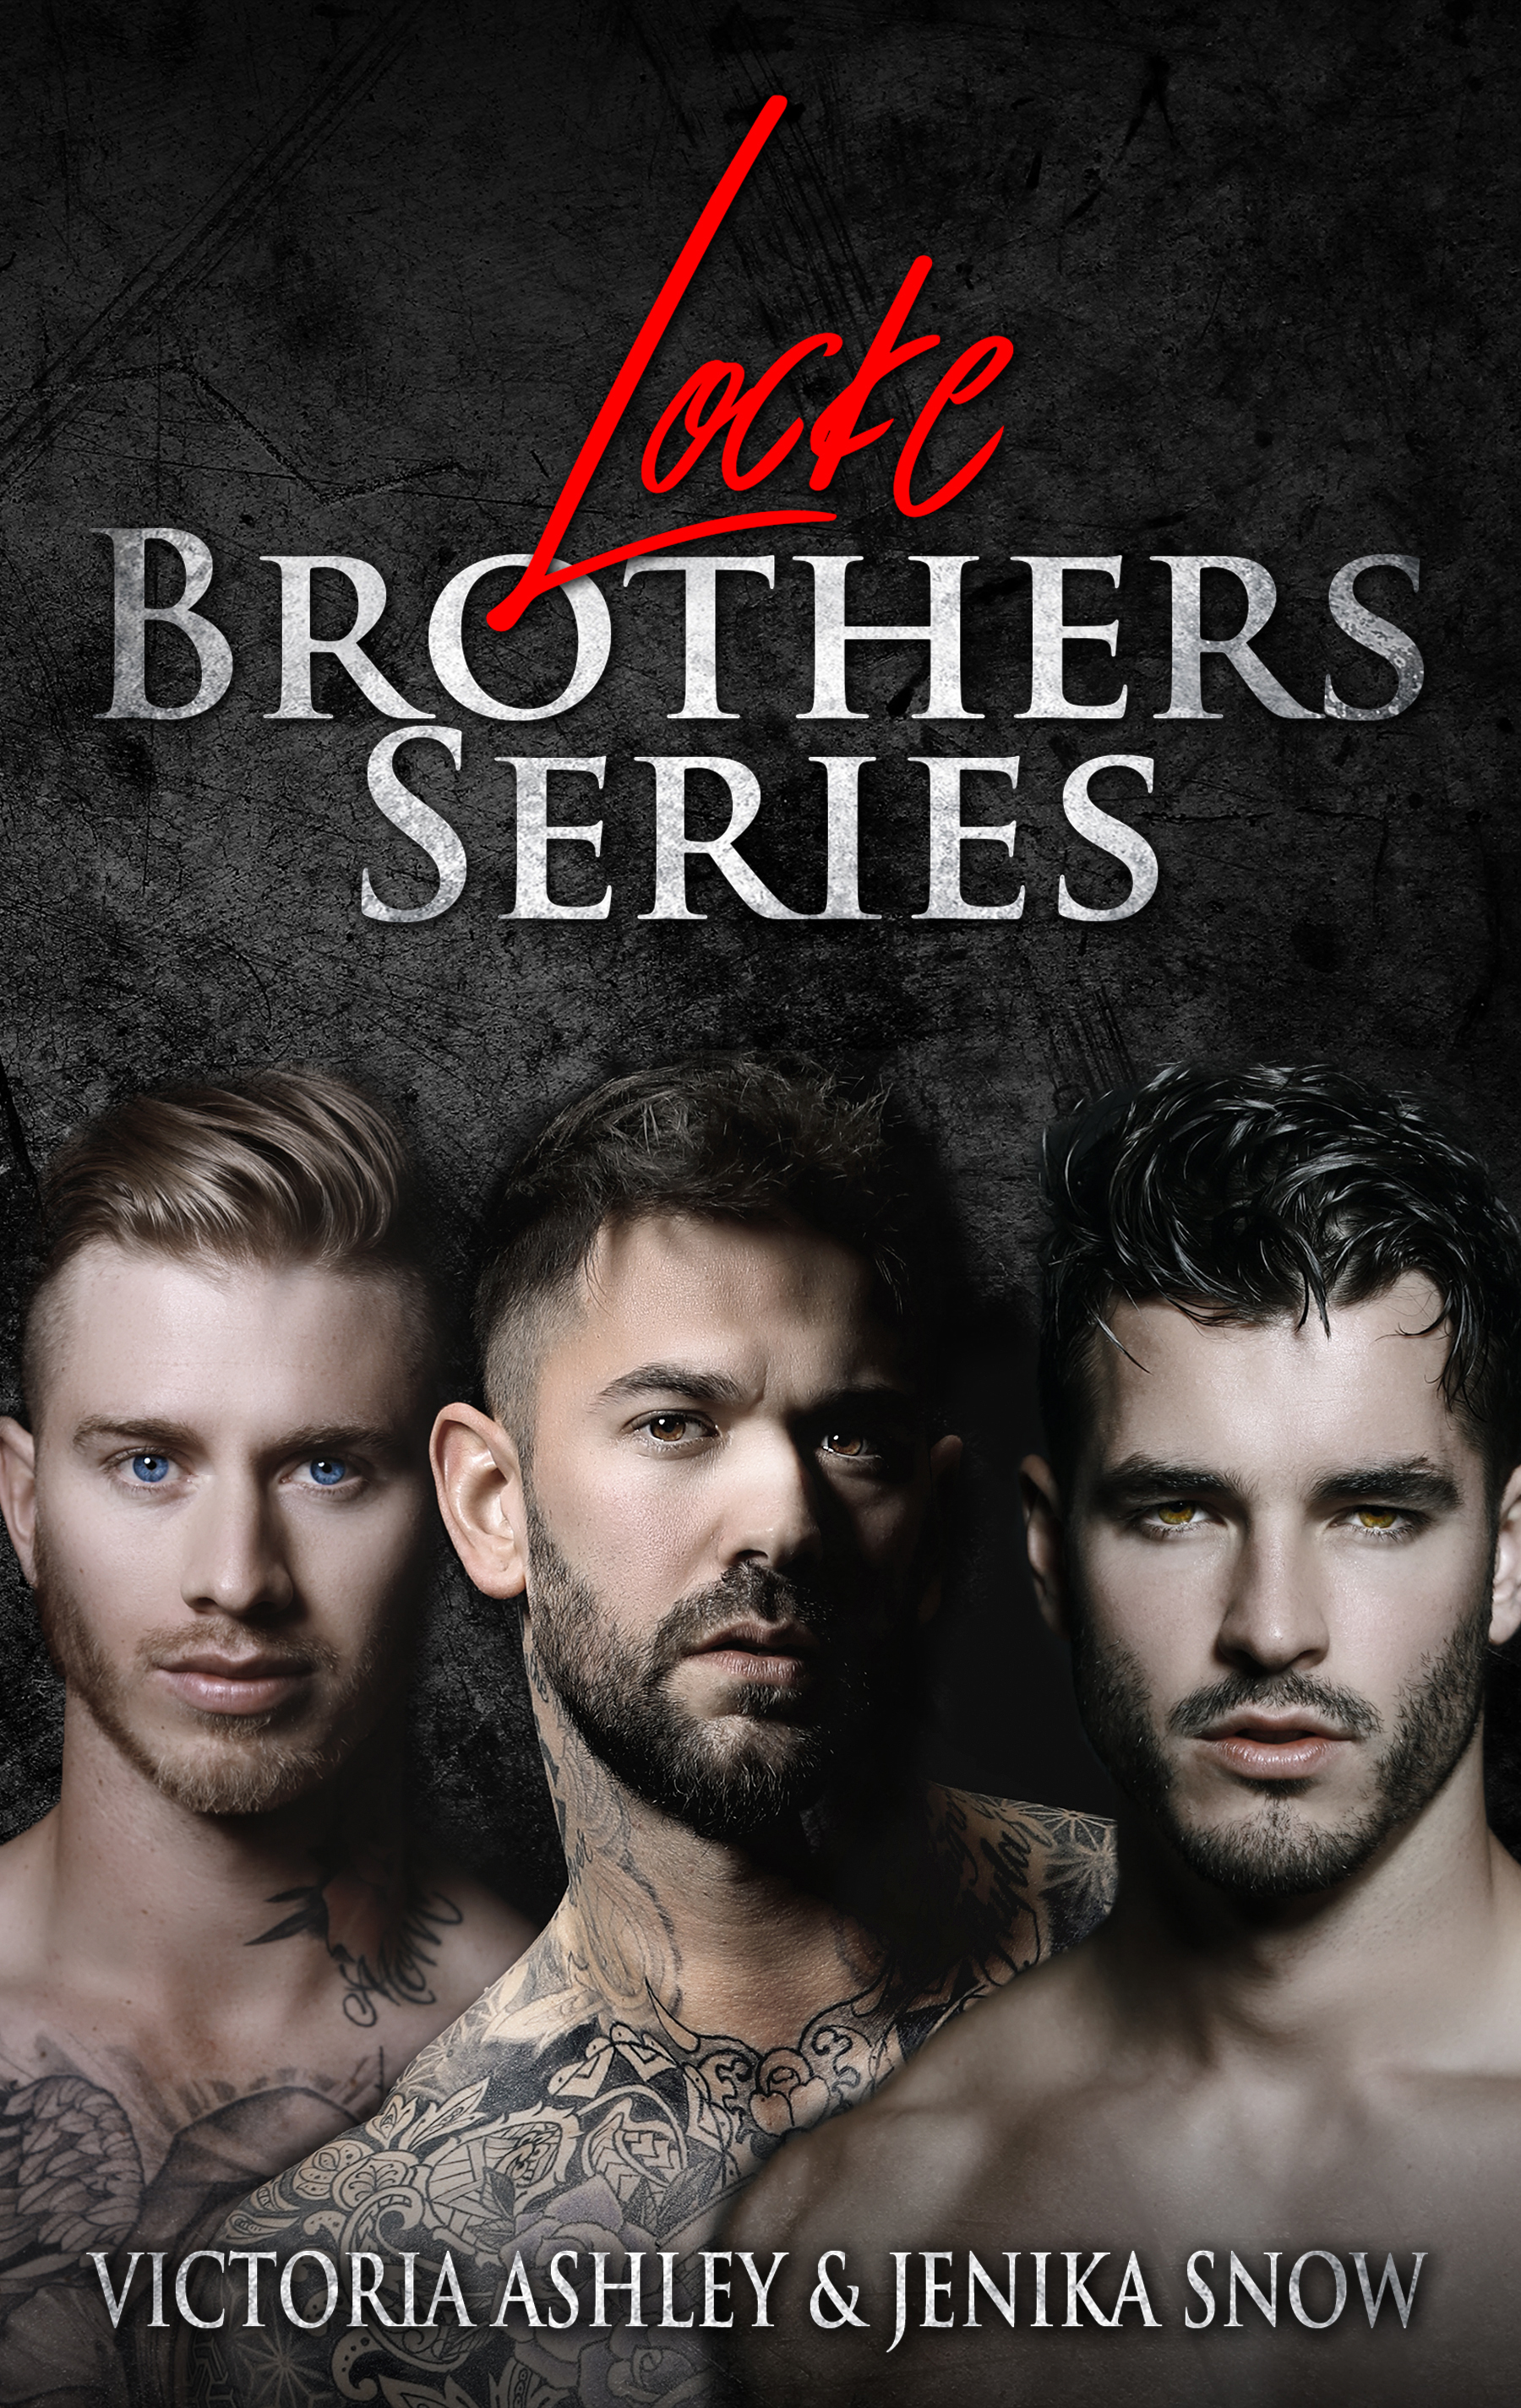 LOCKE BROTHERS SERIES